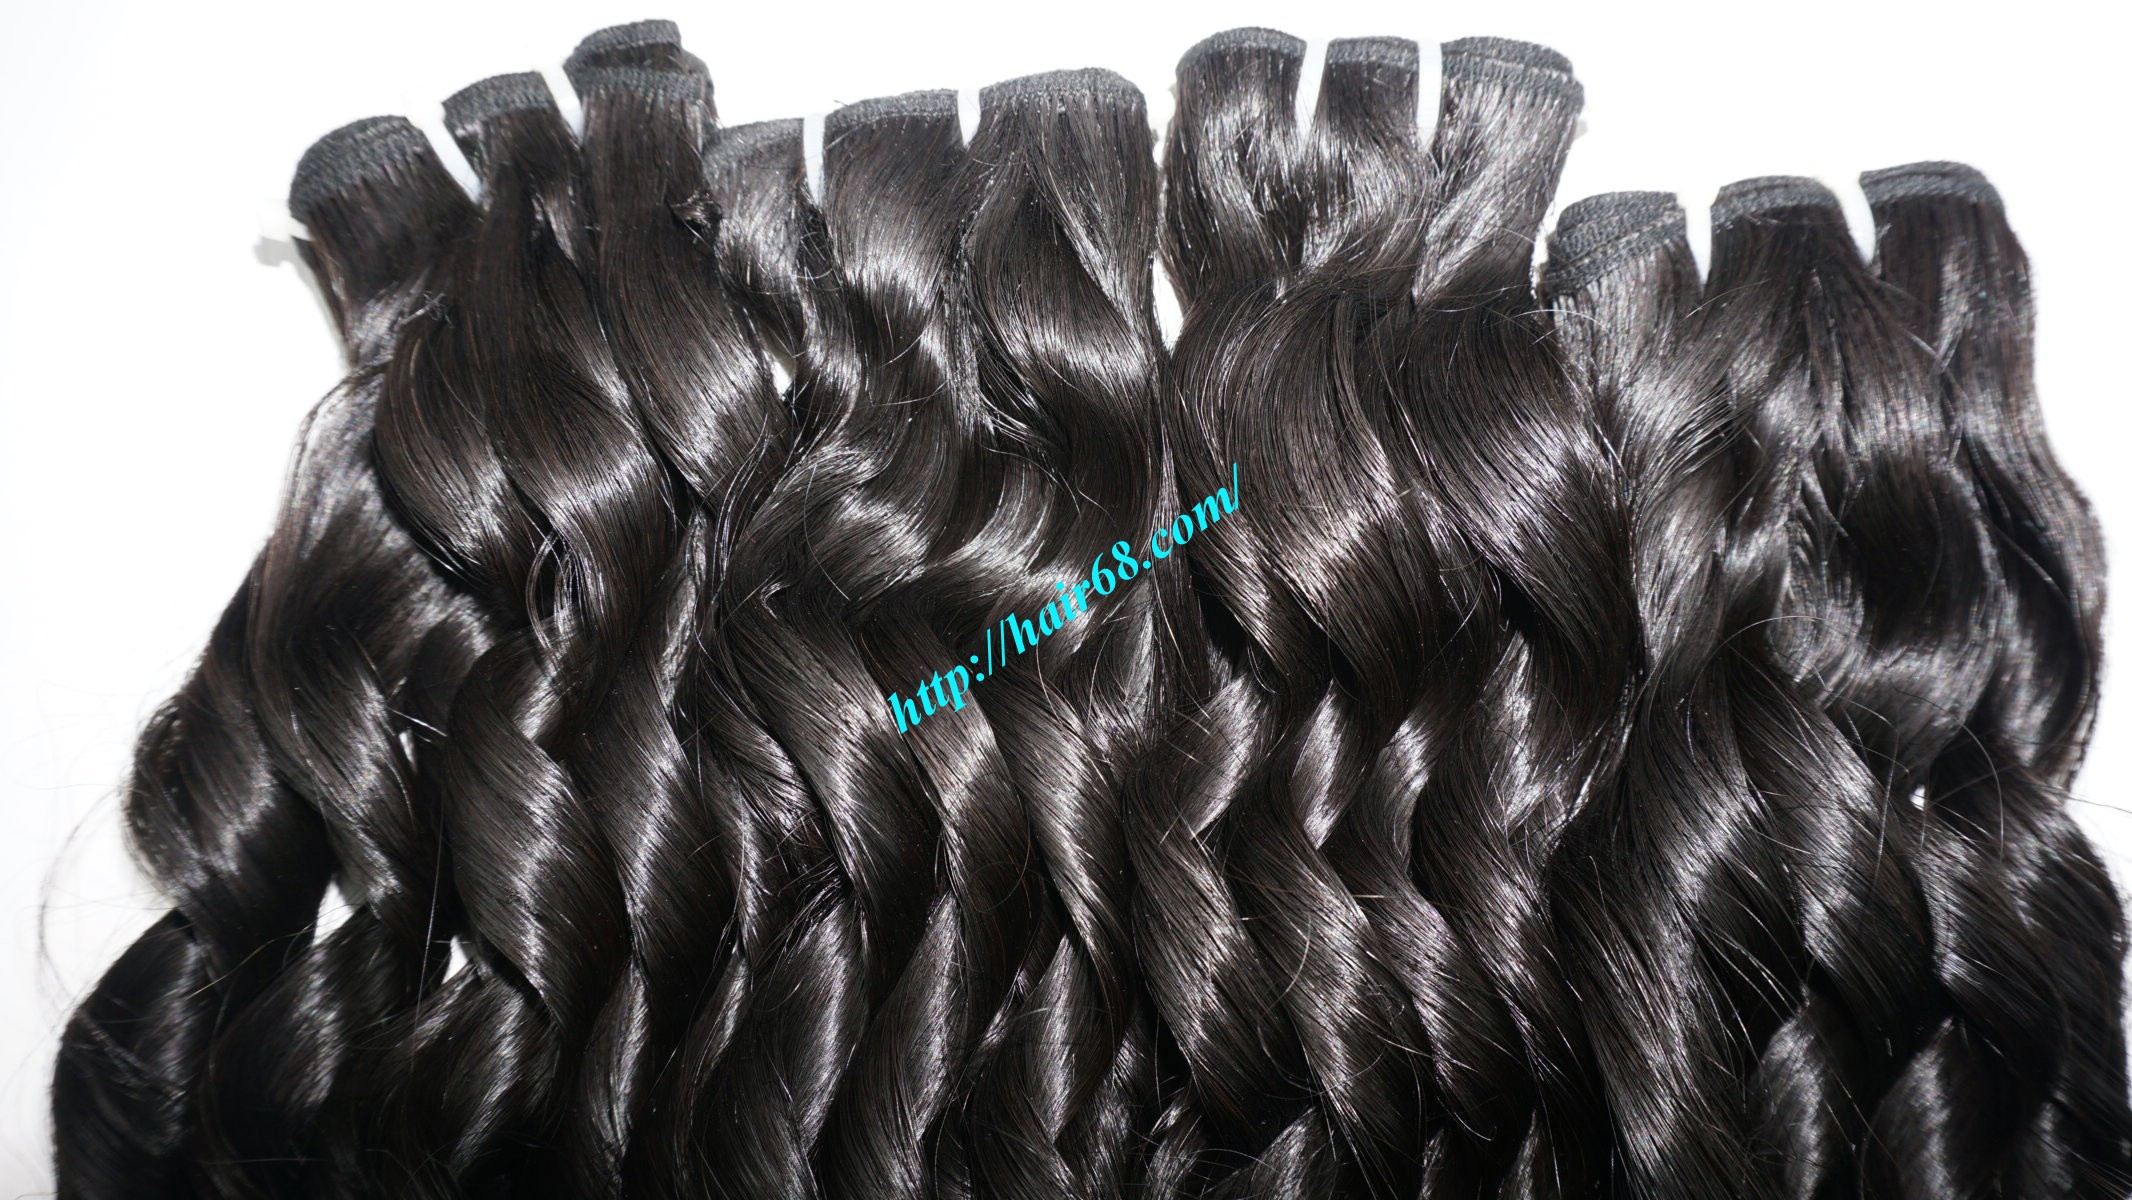 20 inch - Weave Loose Curly Hair Extensions - Double Drawn 8